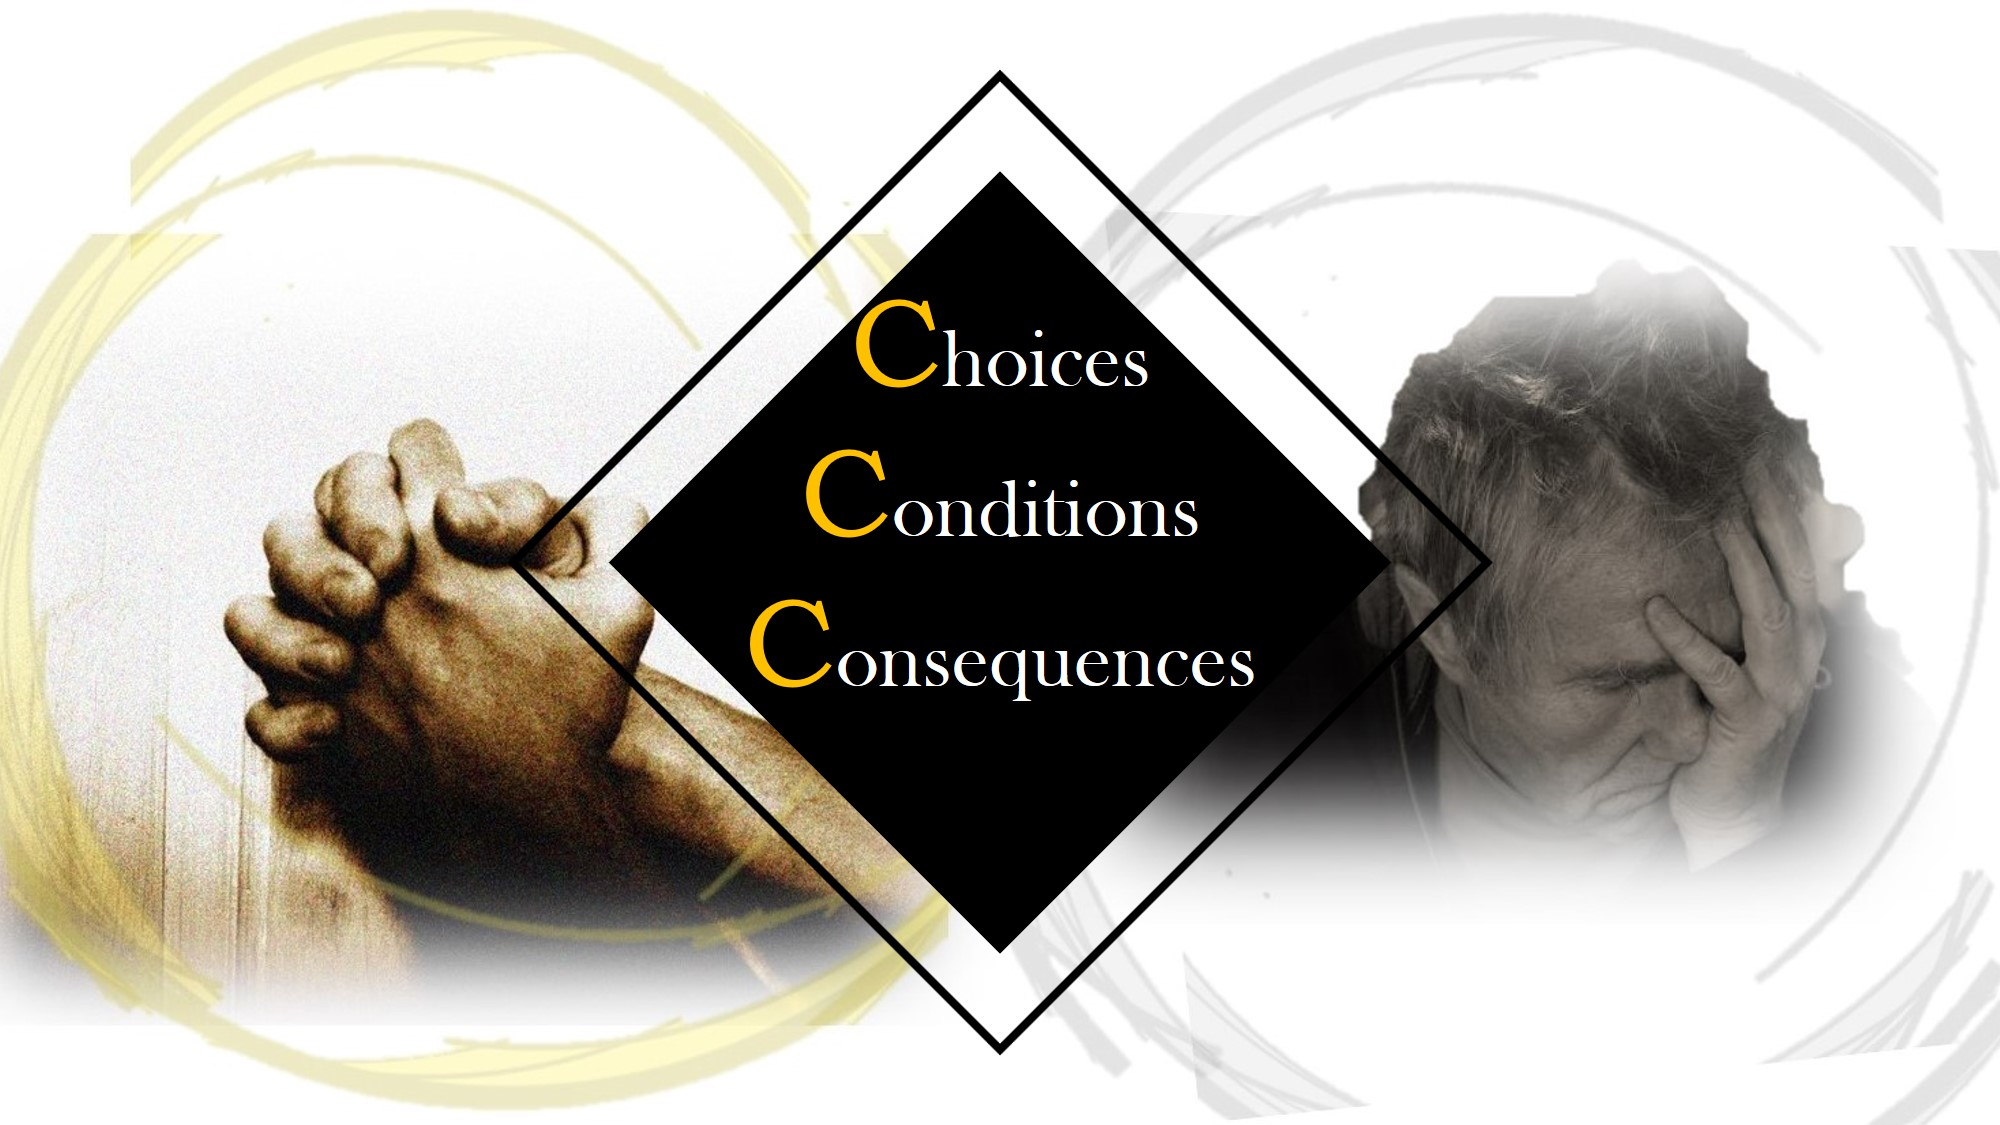 Choices Conditions Consequences